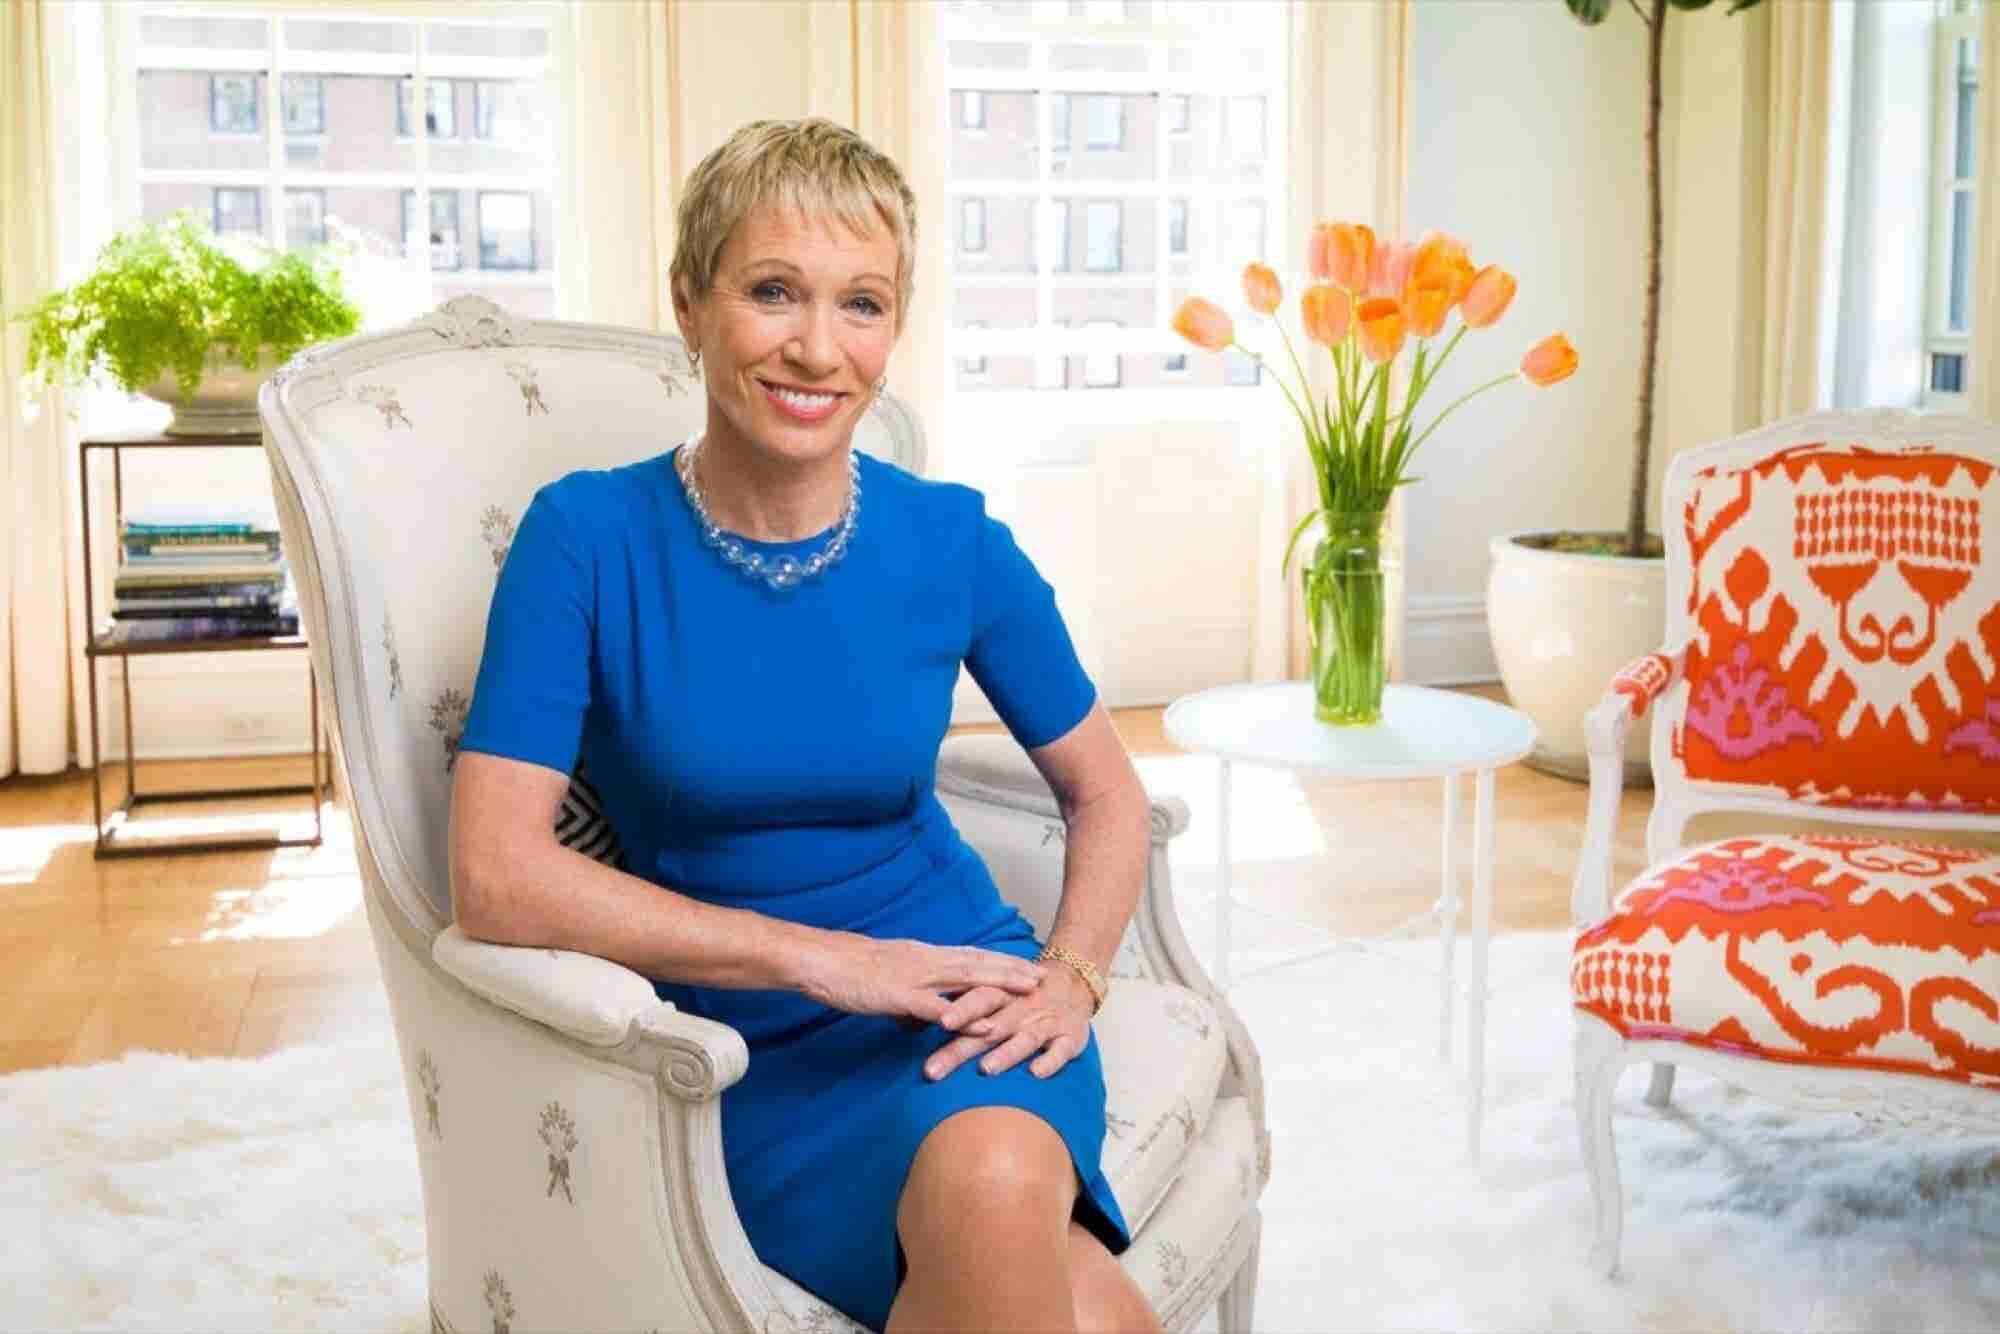 Barbara Corcoran on the 5 Traits All Successful Entrepreneurs Share